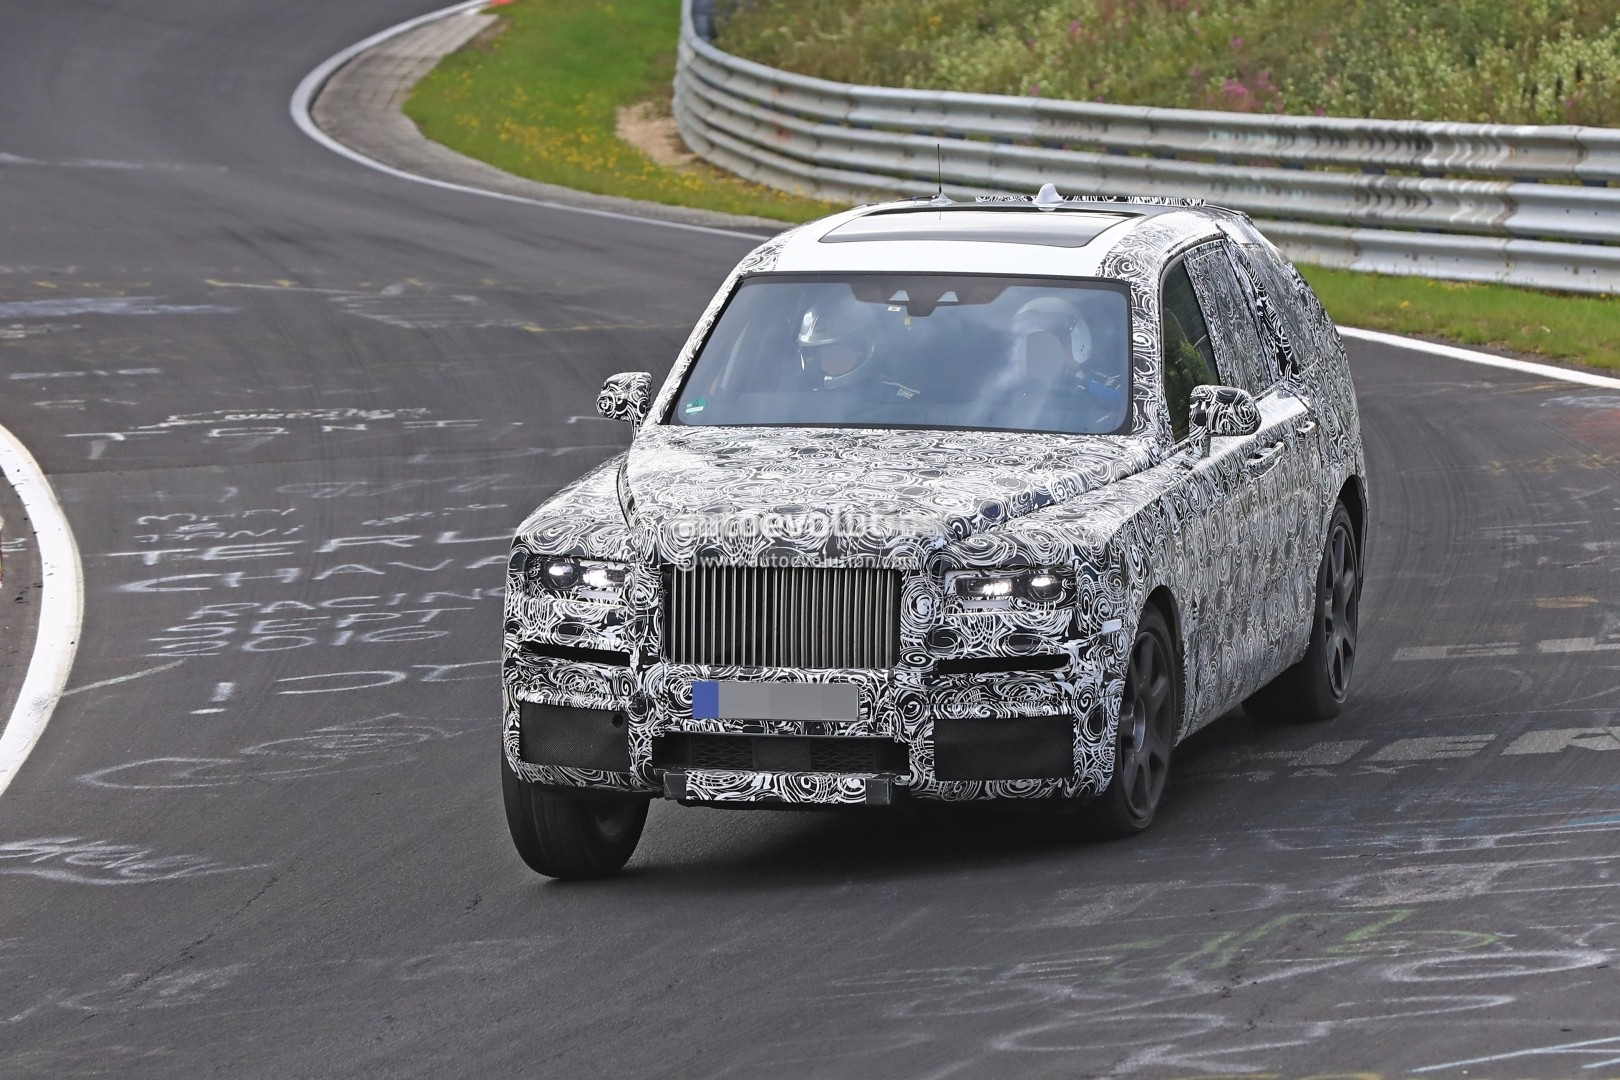 Rolls-Royce Phantom resets the benchmark